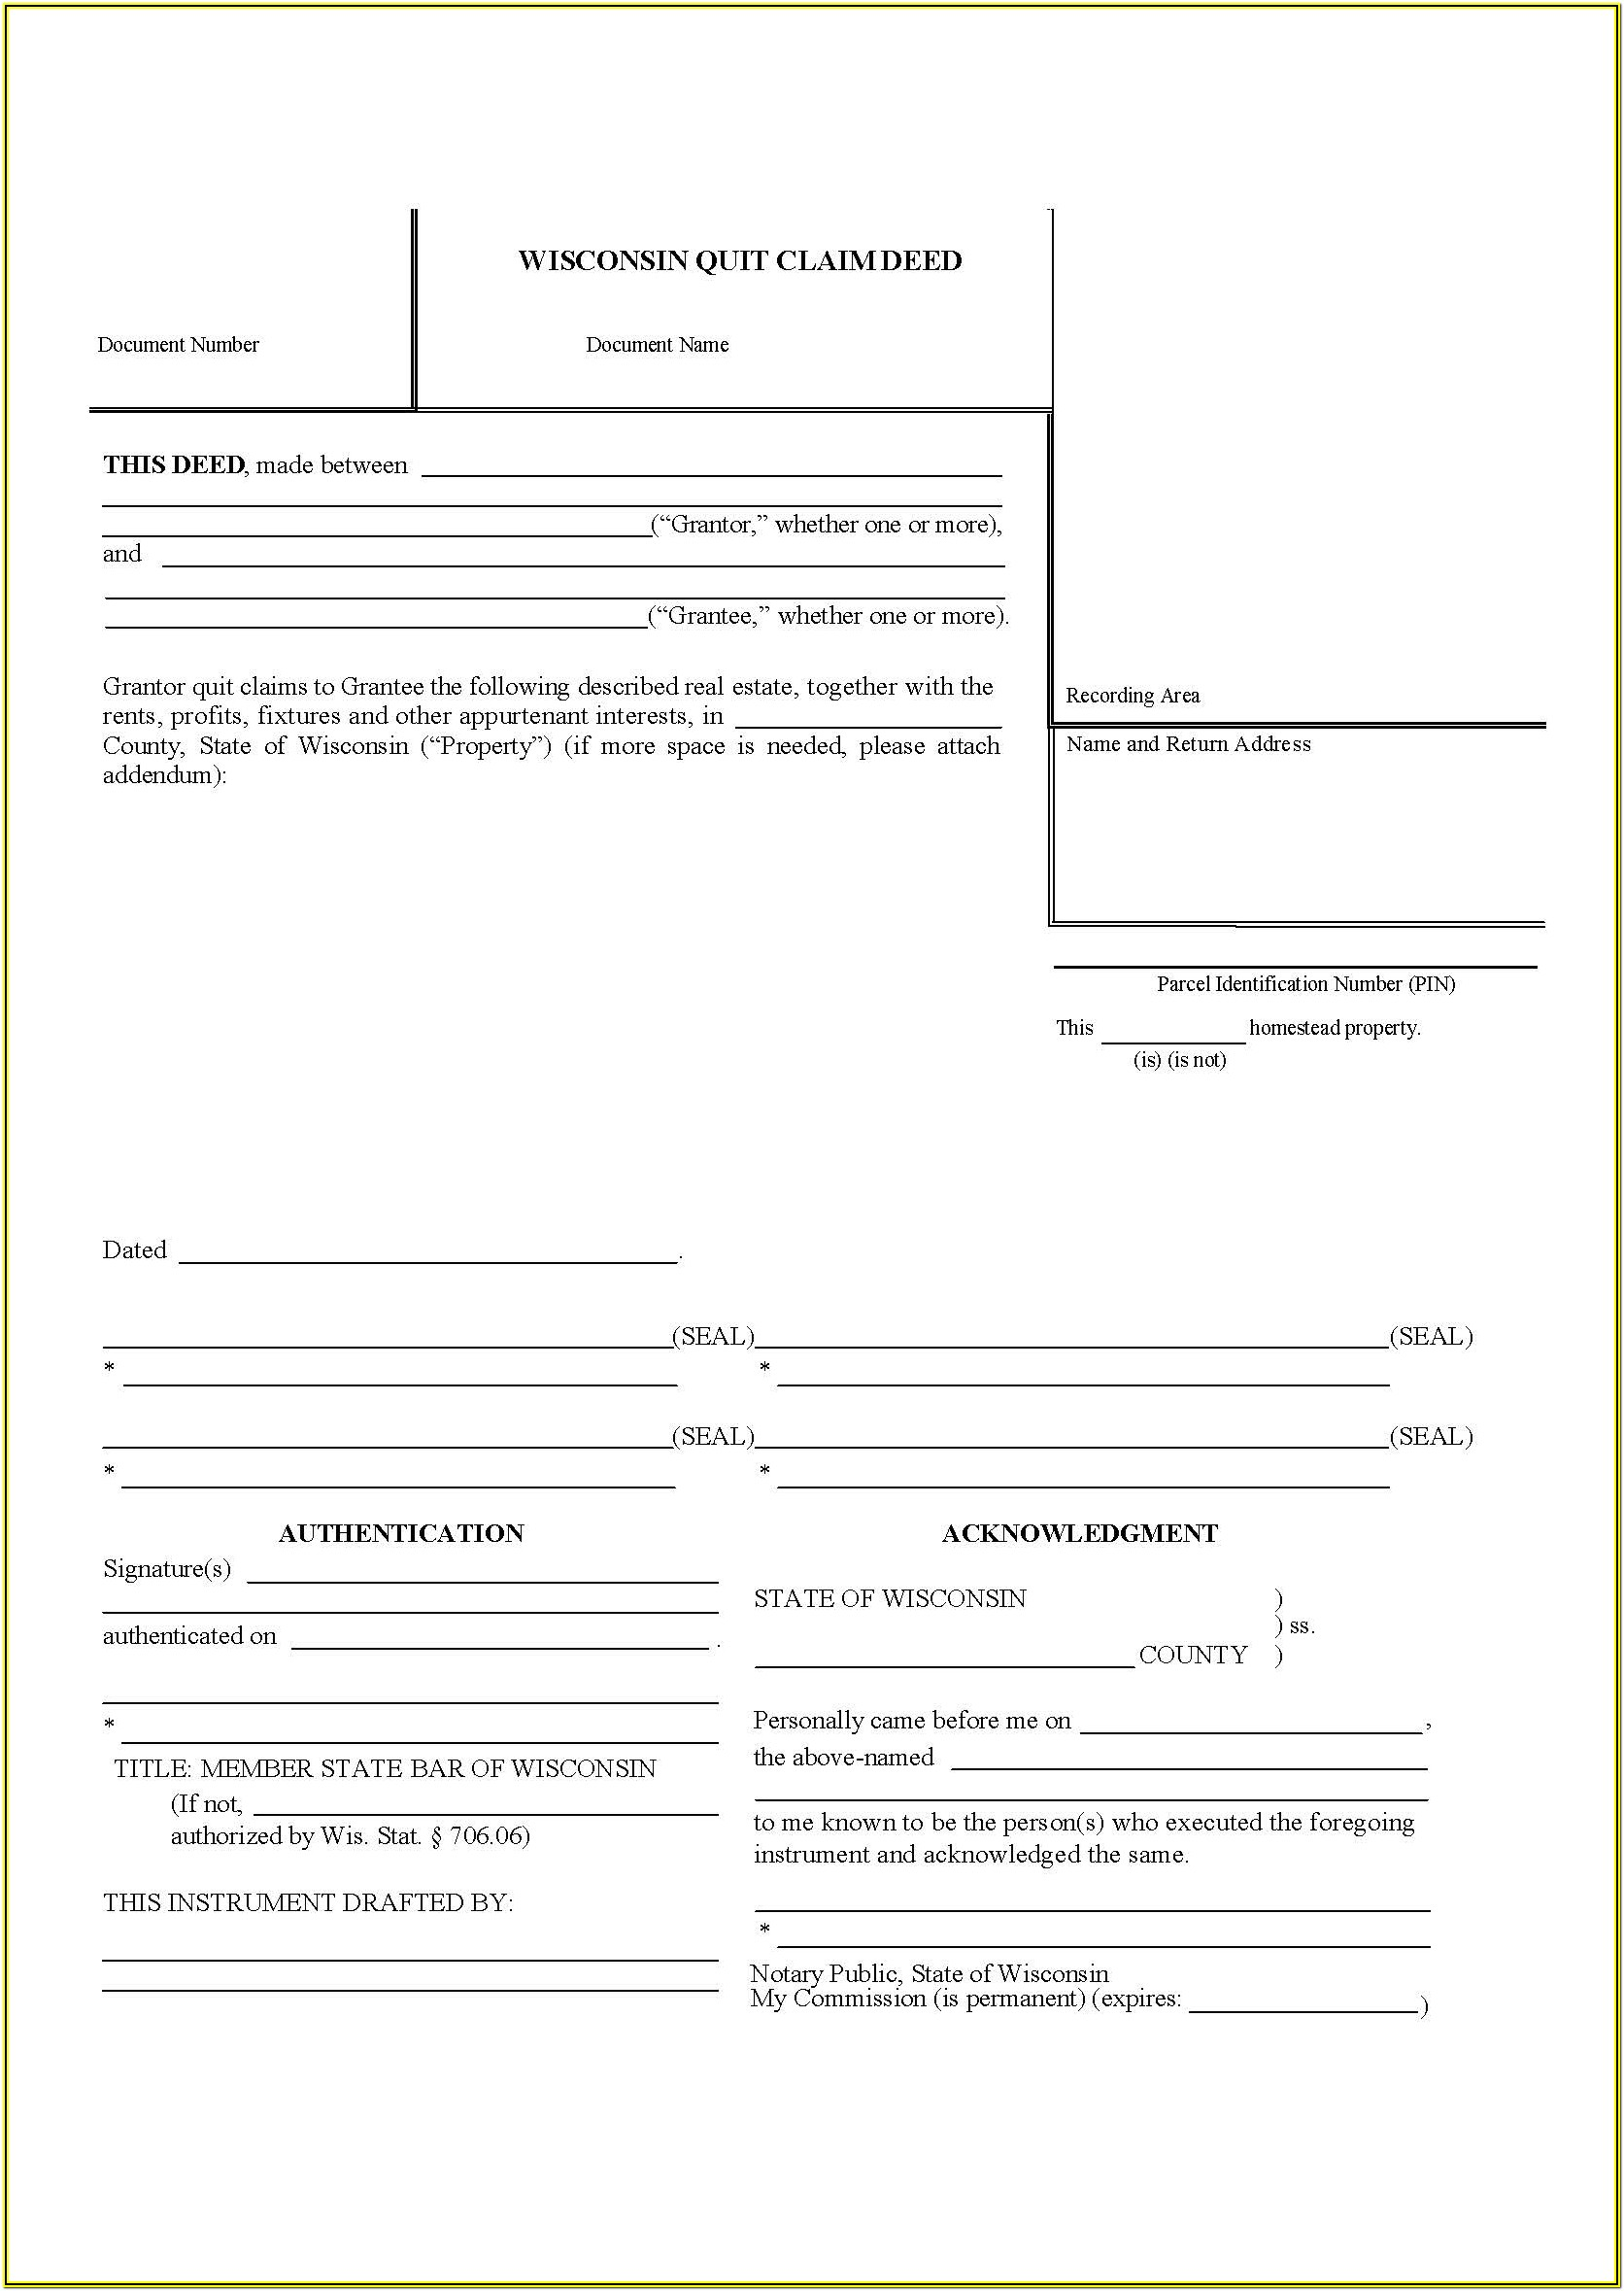 Wisconsin Quit Claim Deed Form 3 2003 Instructions